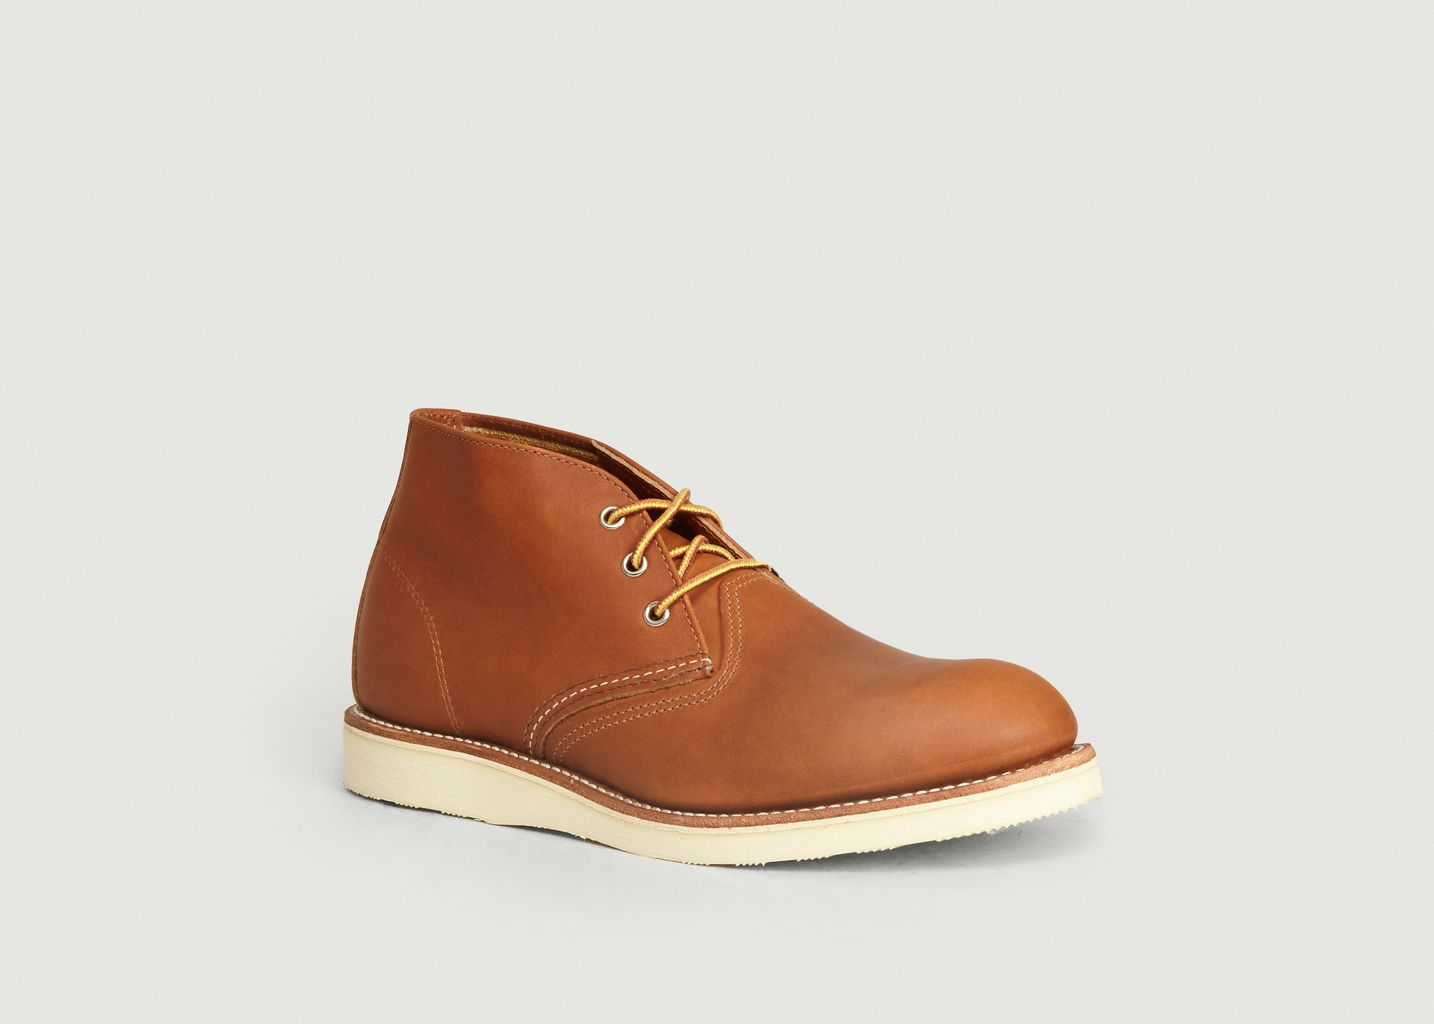 Boots Work Chukka Oro-iginal Camel - Red Wing Shoes